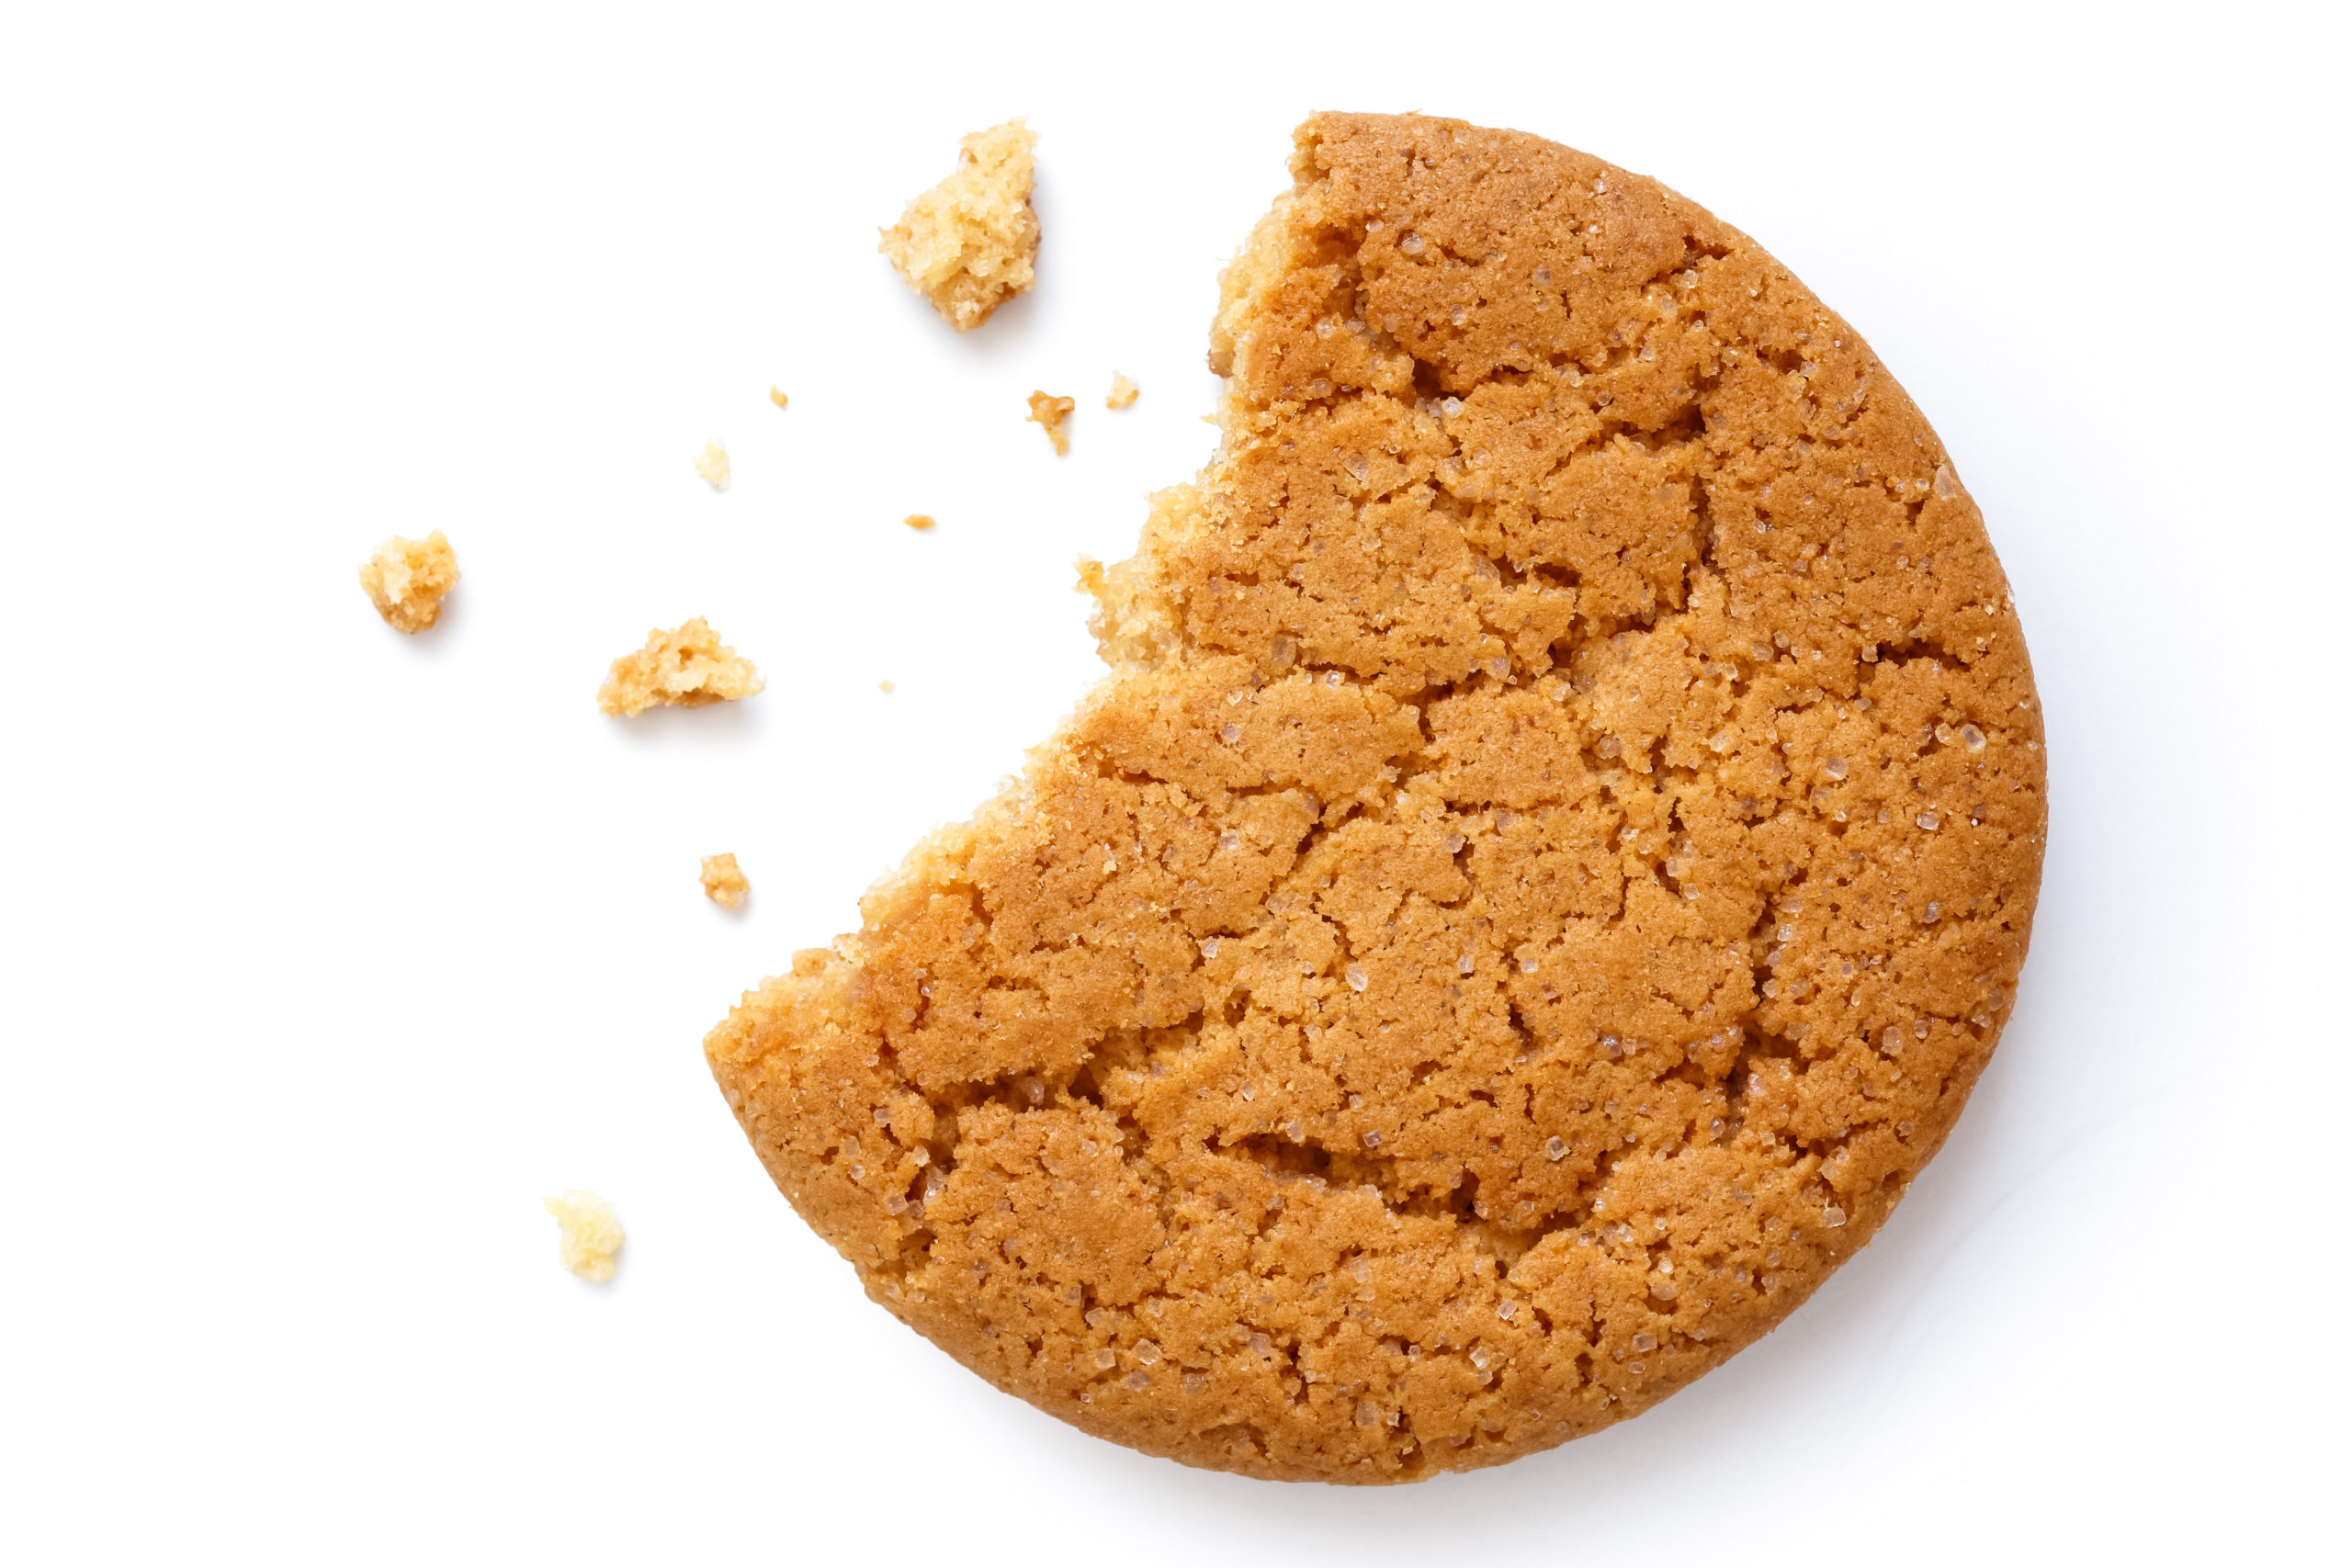 ginger cookie with bite taken out and crumbs